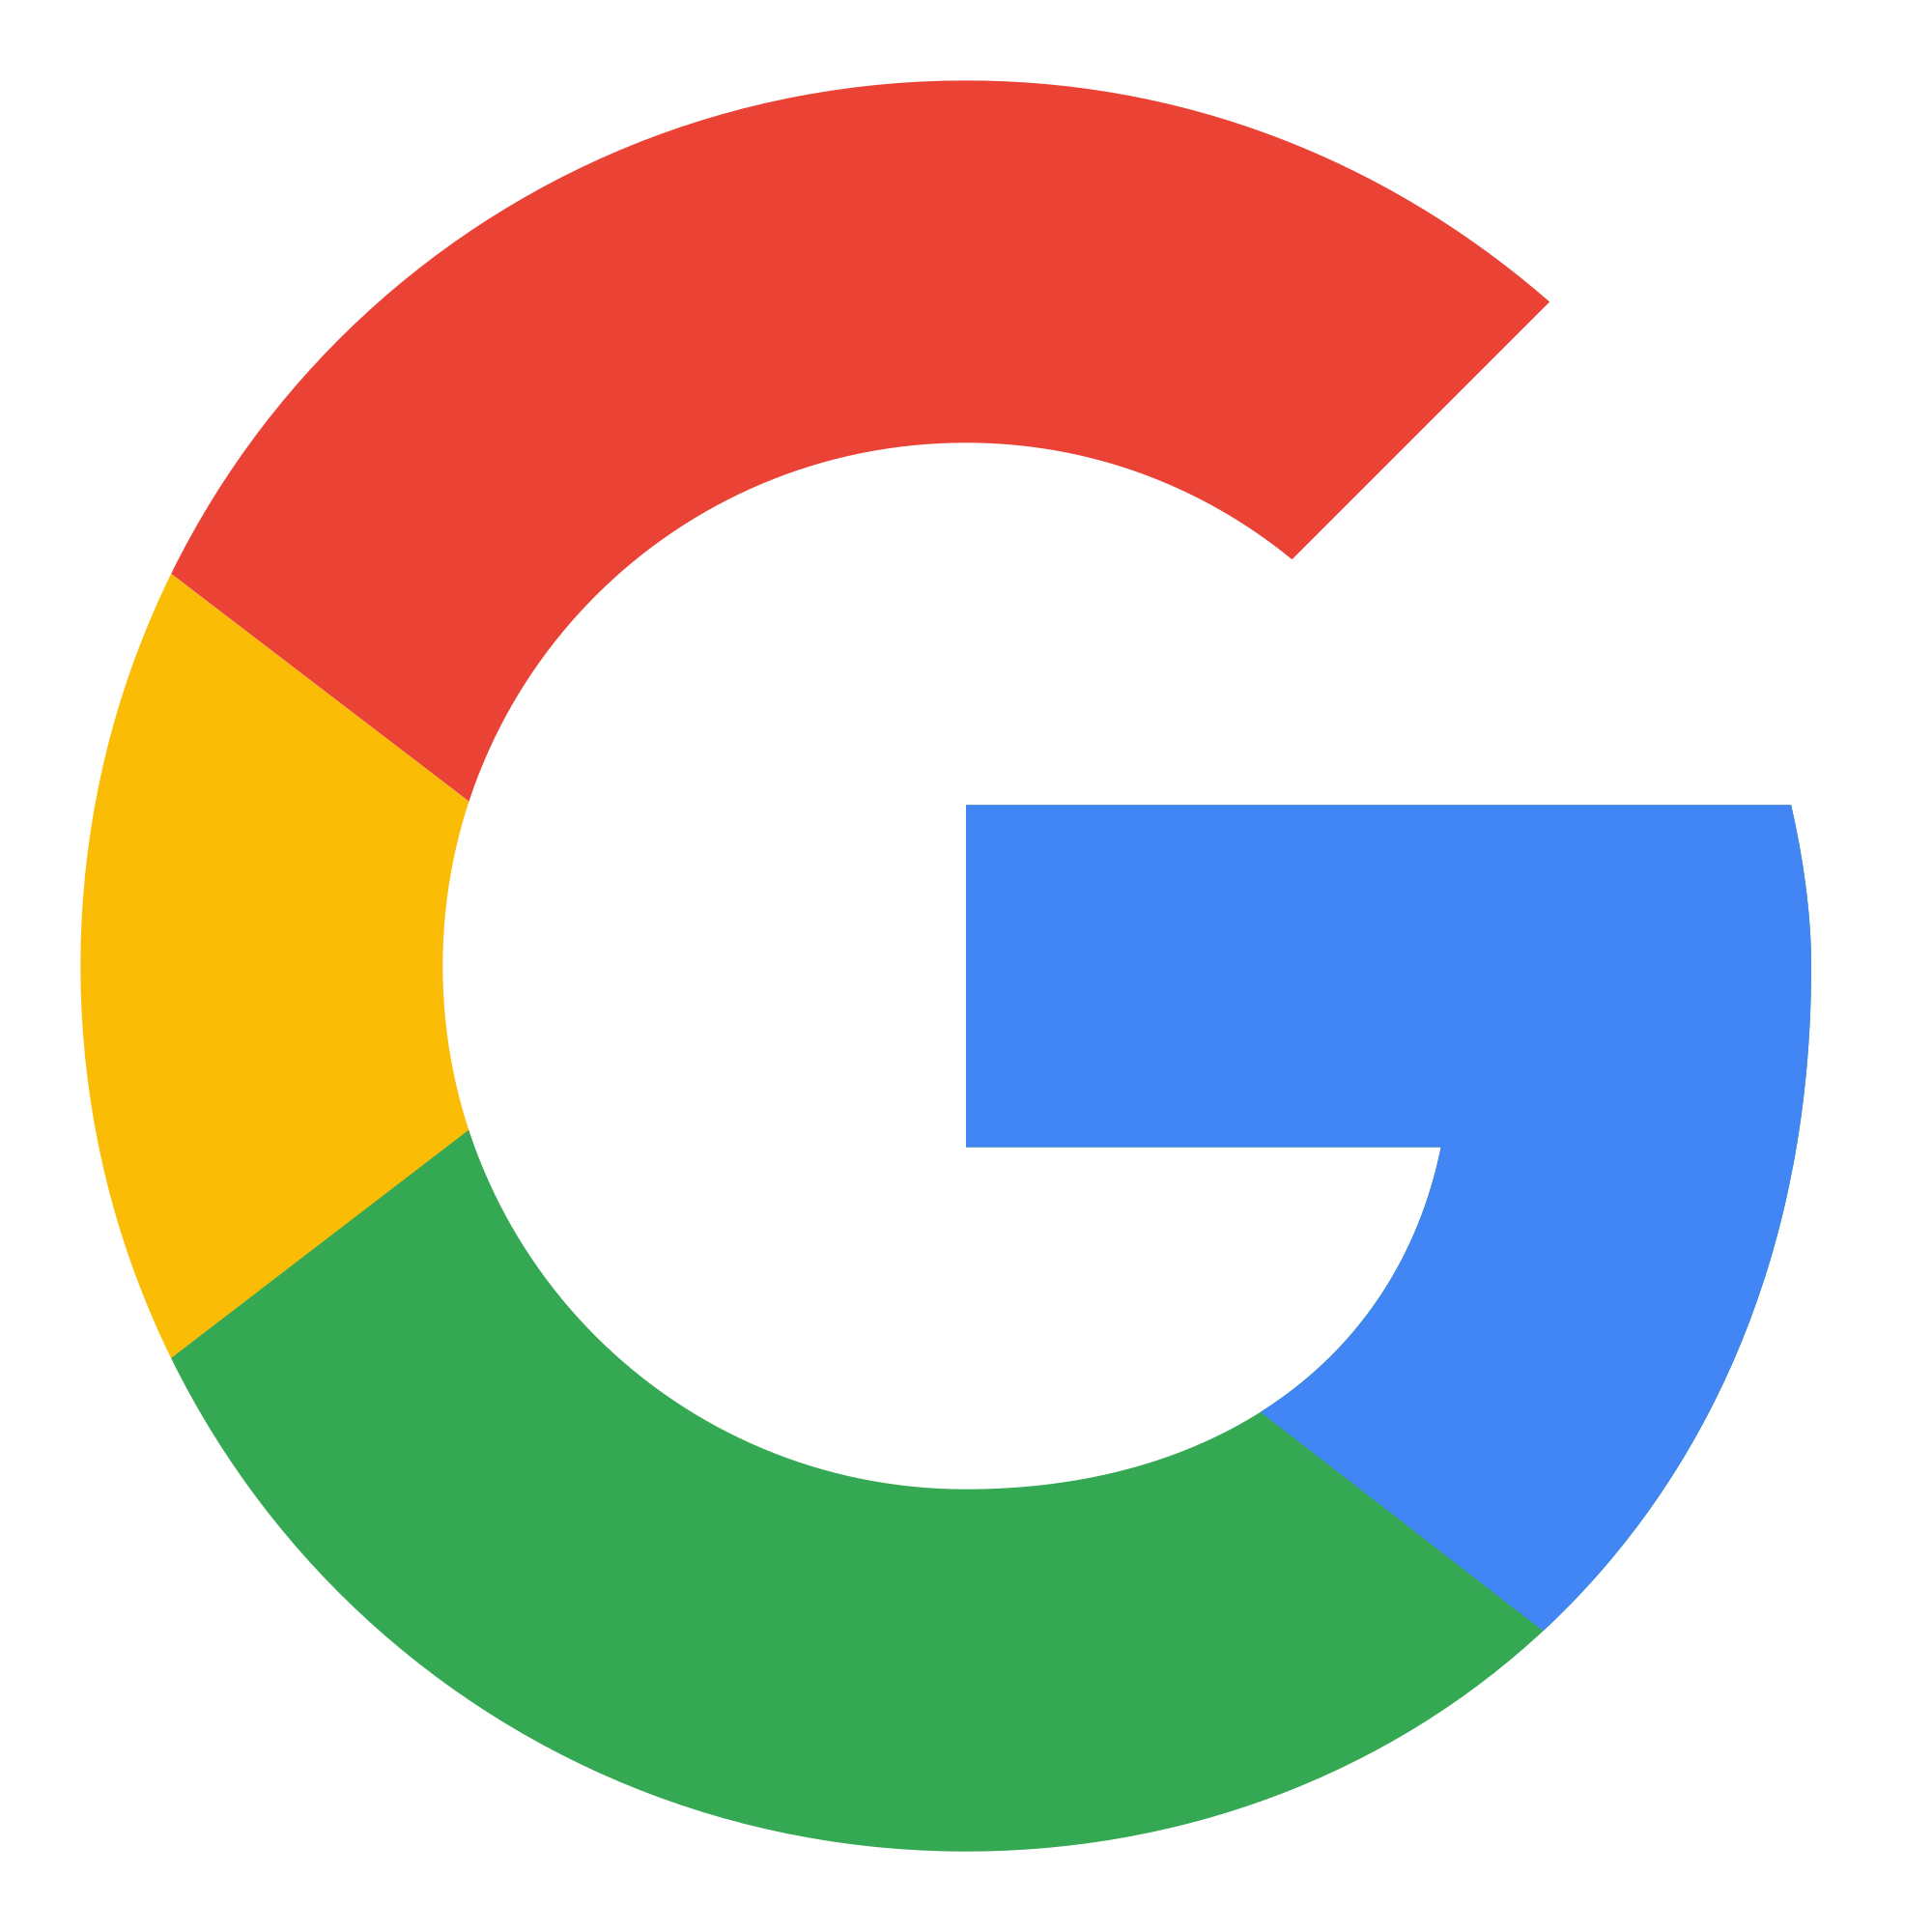 Google logo png 2015. File favicon wikimedia commons